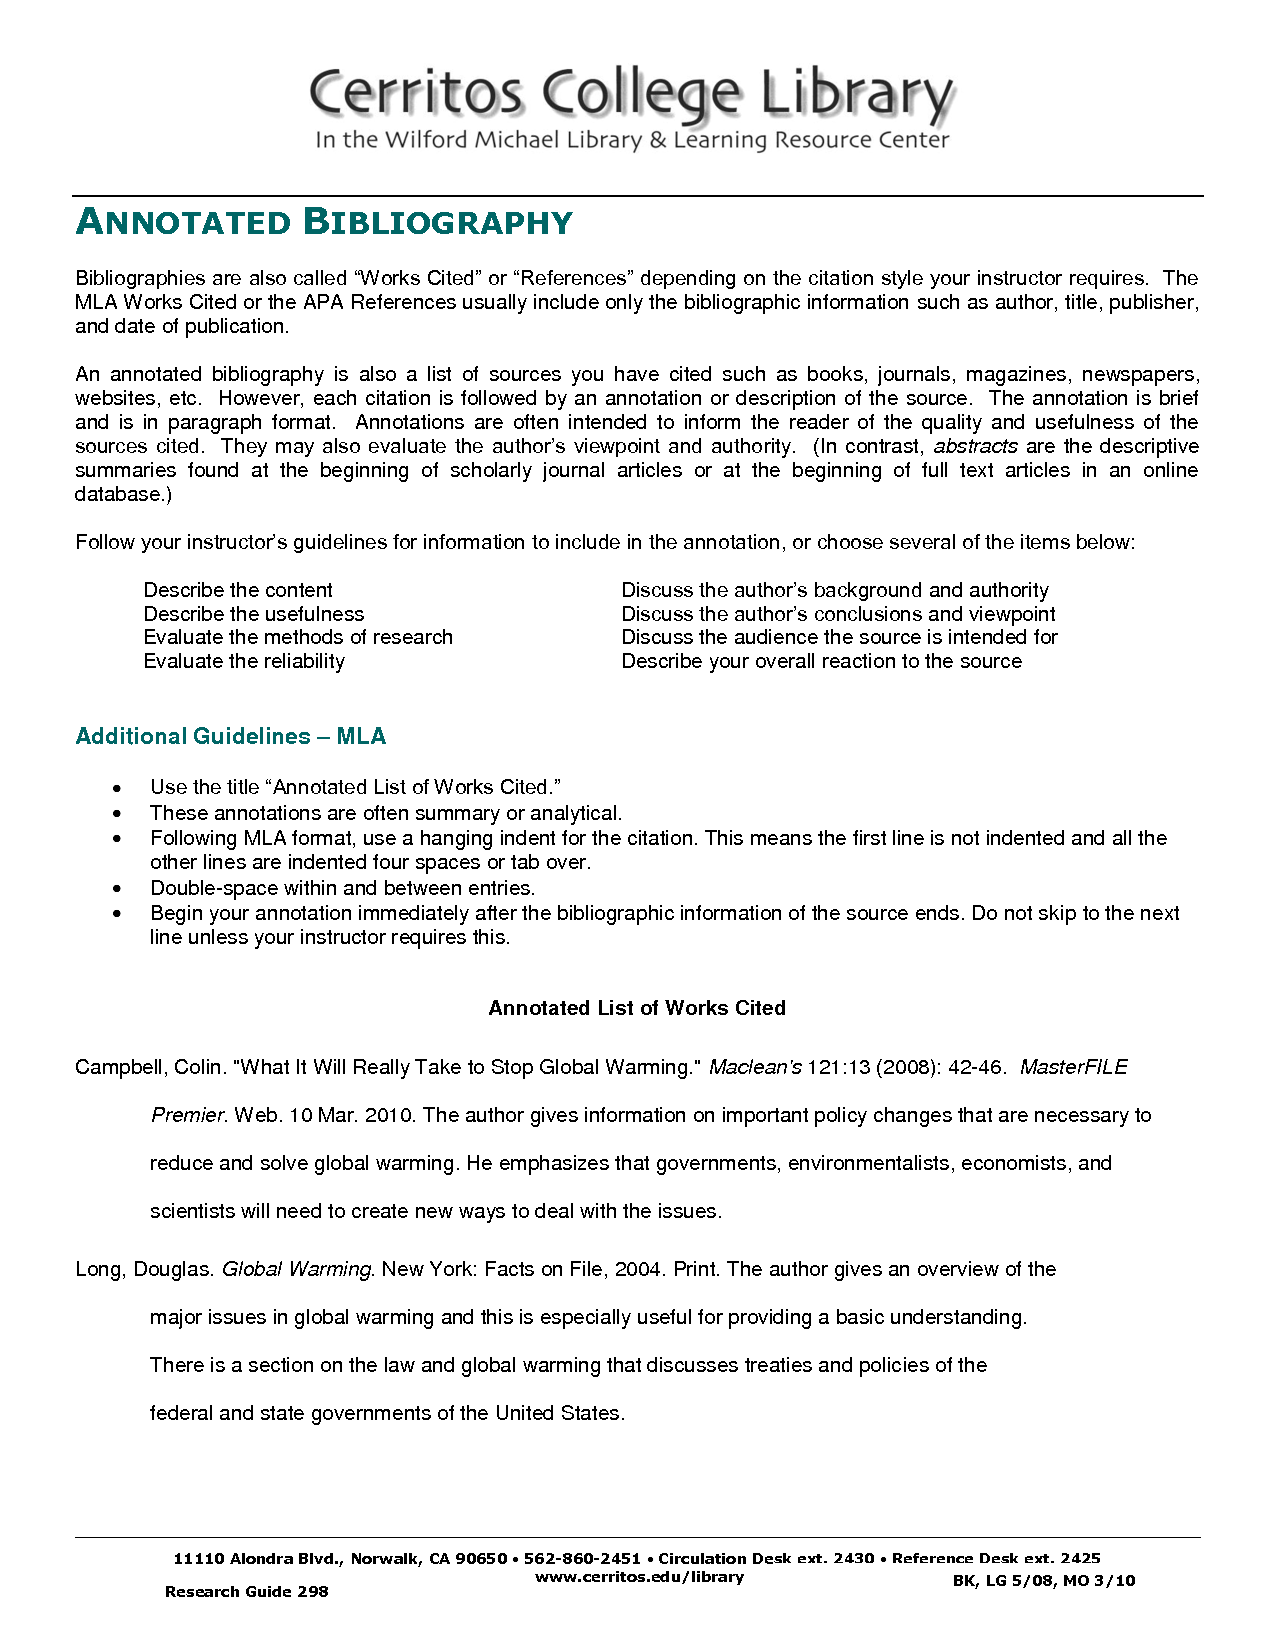 Annotated format sample examples. Bibliography apa